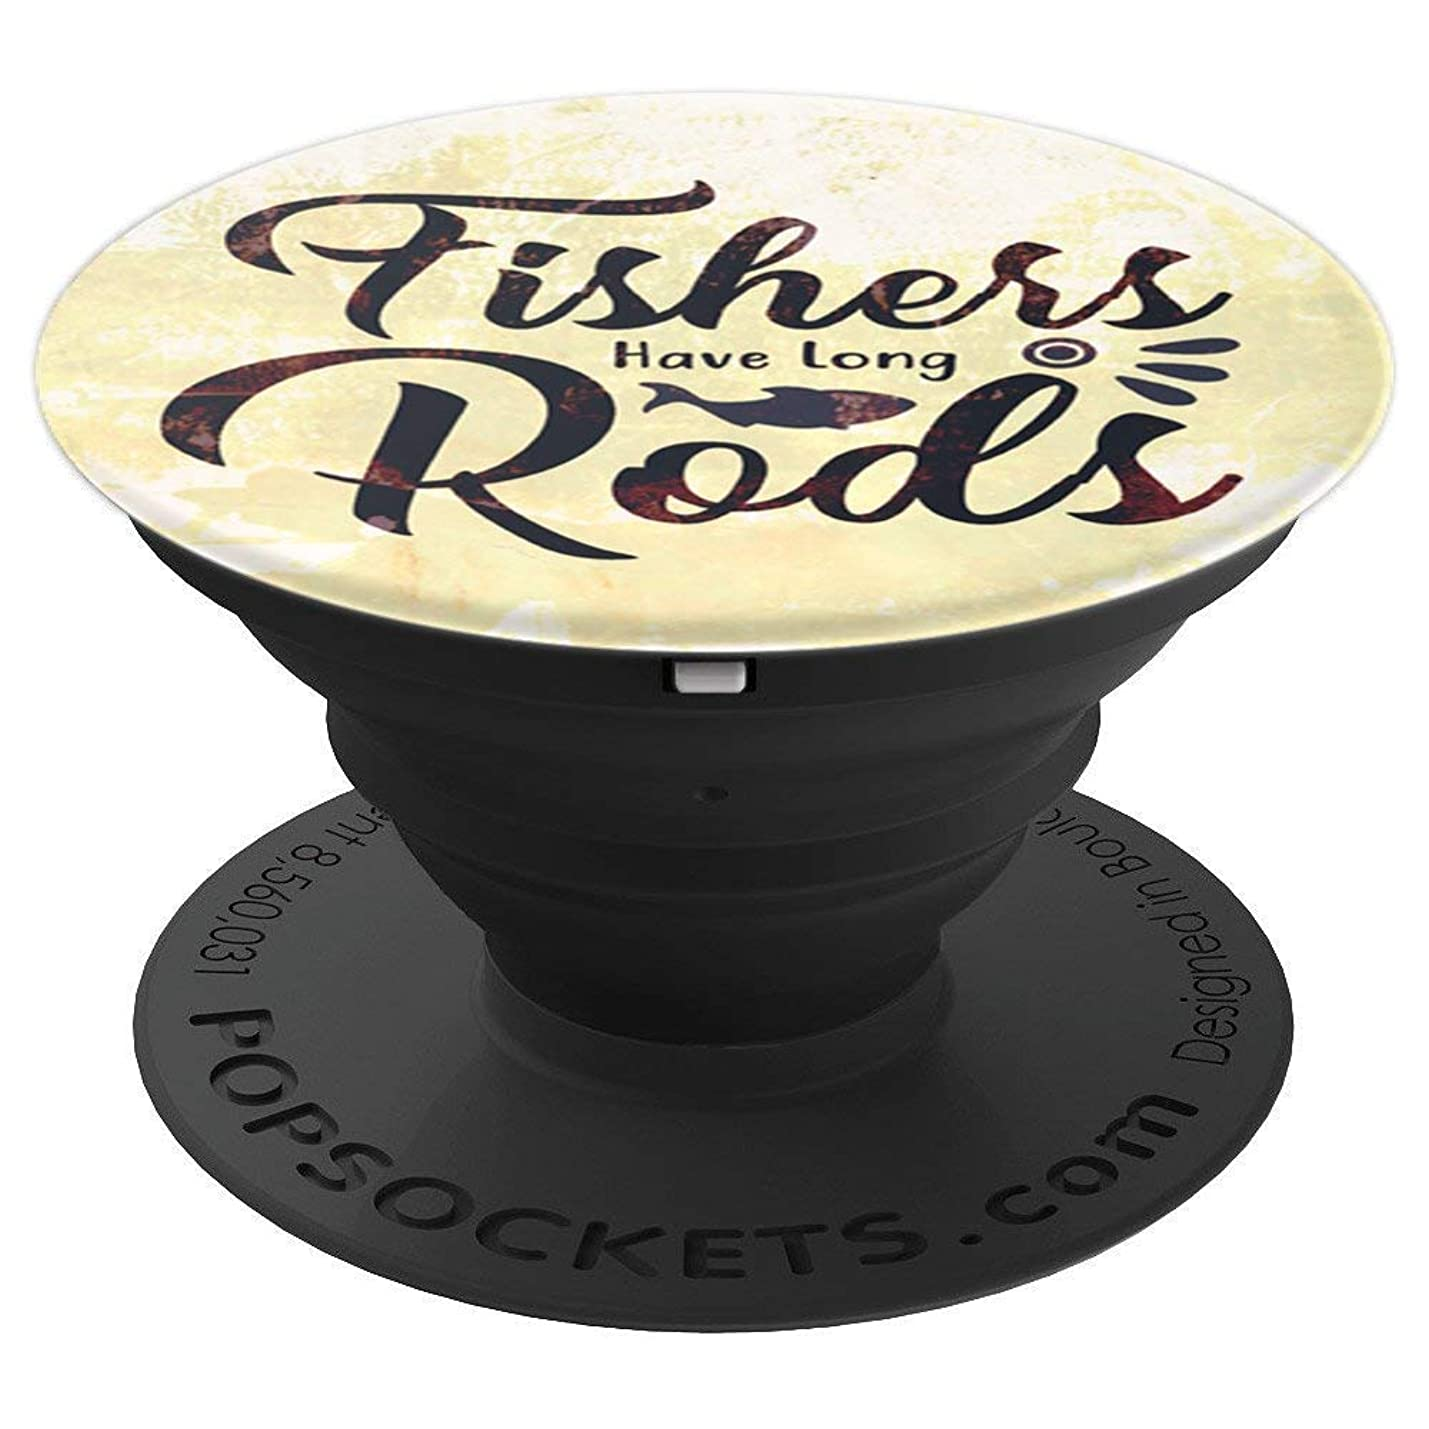 Fishing Design For Men Fisher Quote Funny Meme - Pearl White - PopSockets Grip and Stand for Phones and Tablets axgvrhdlggctp545